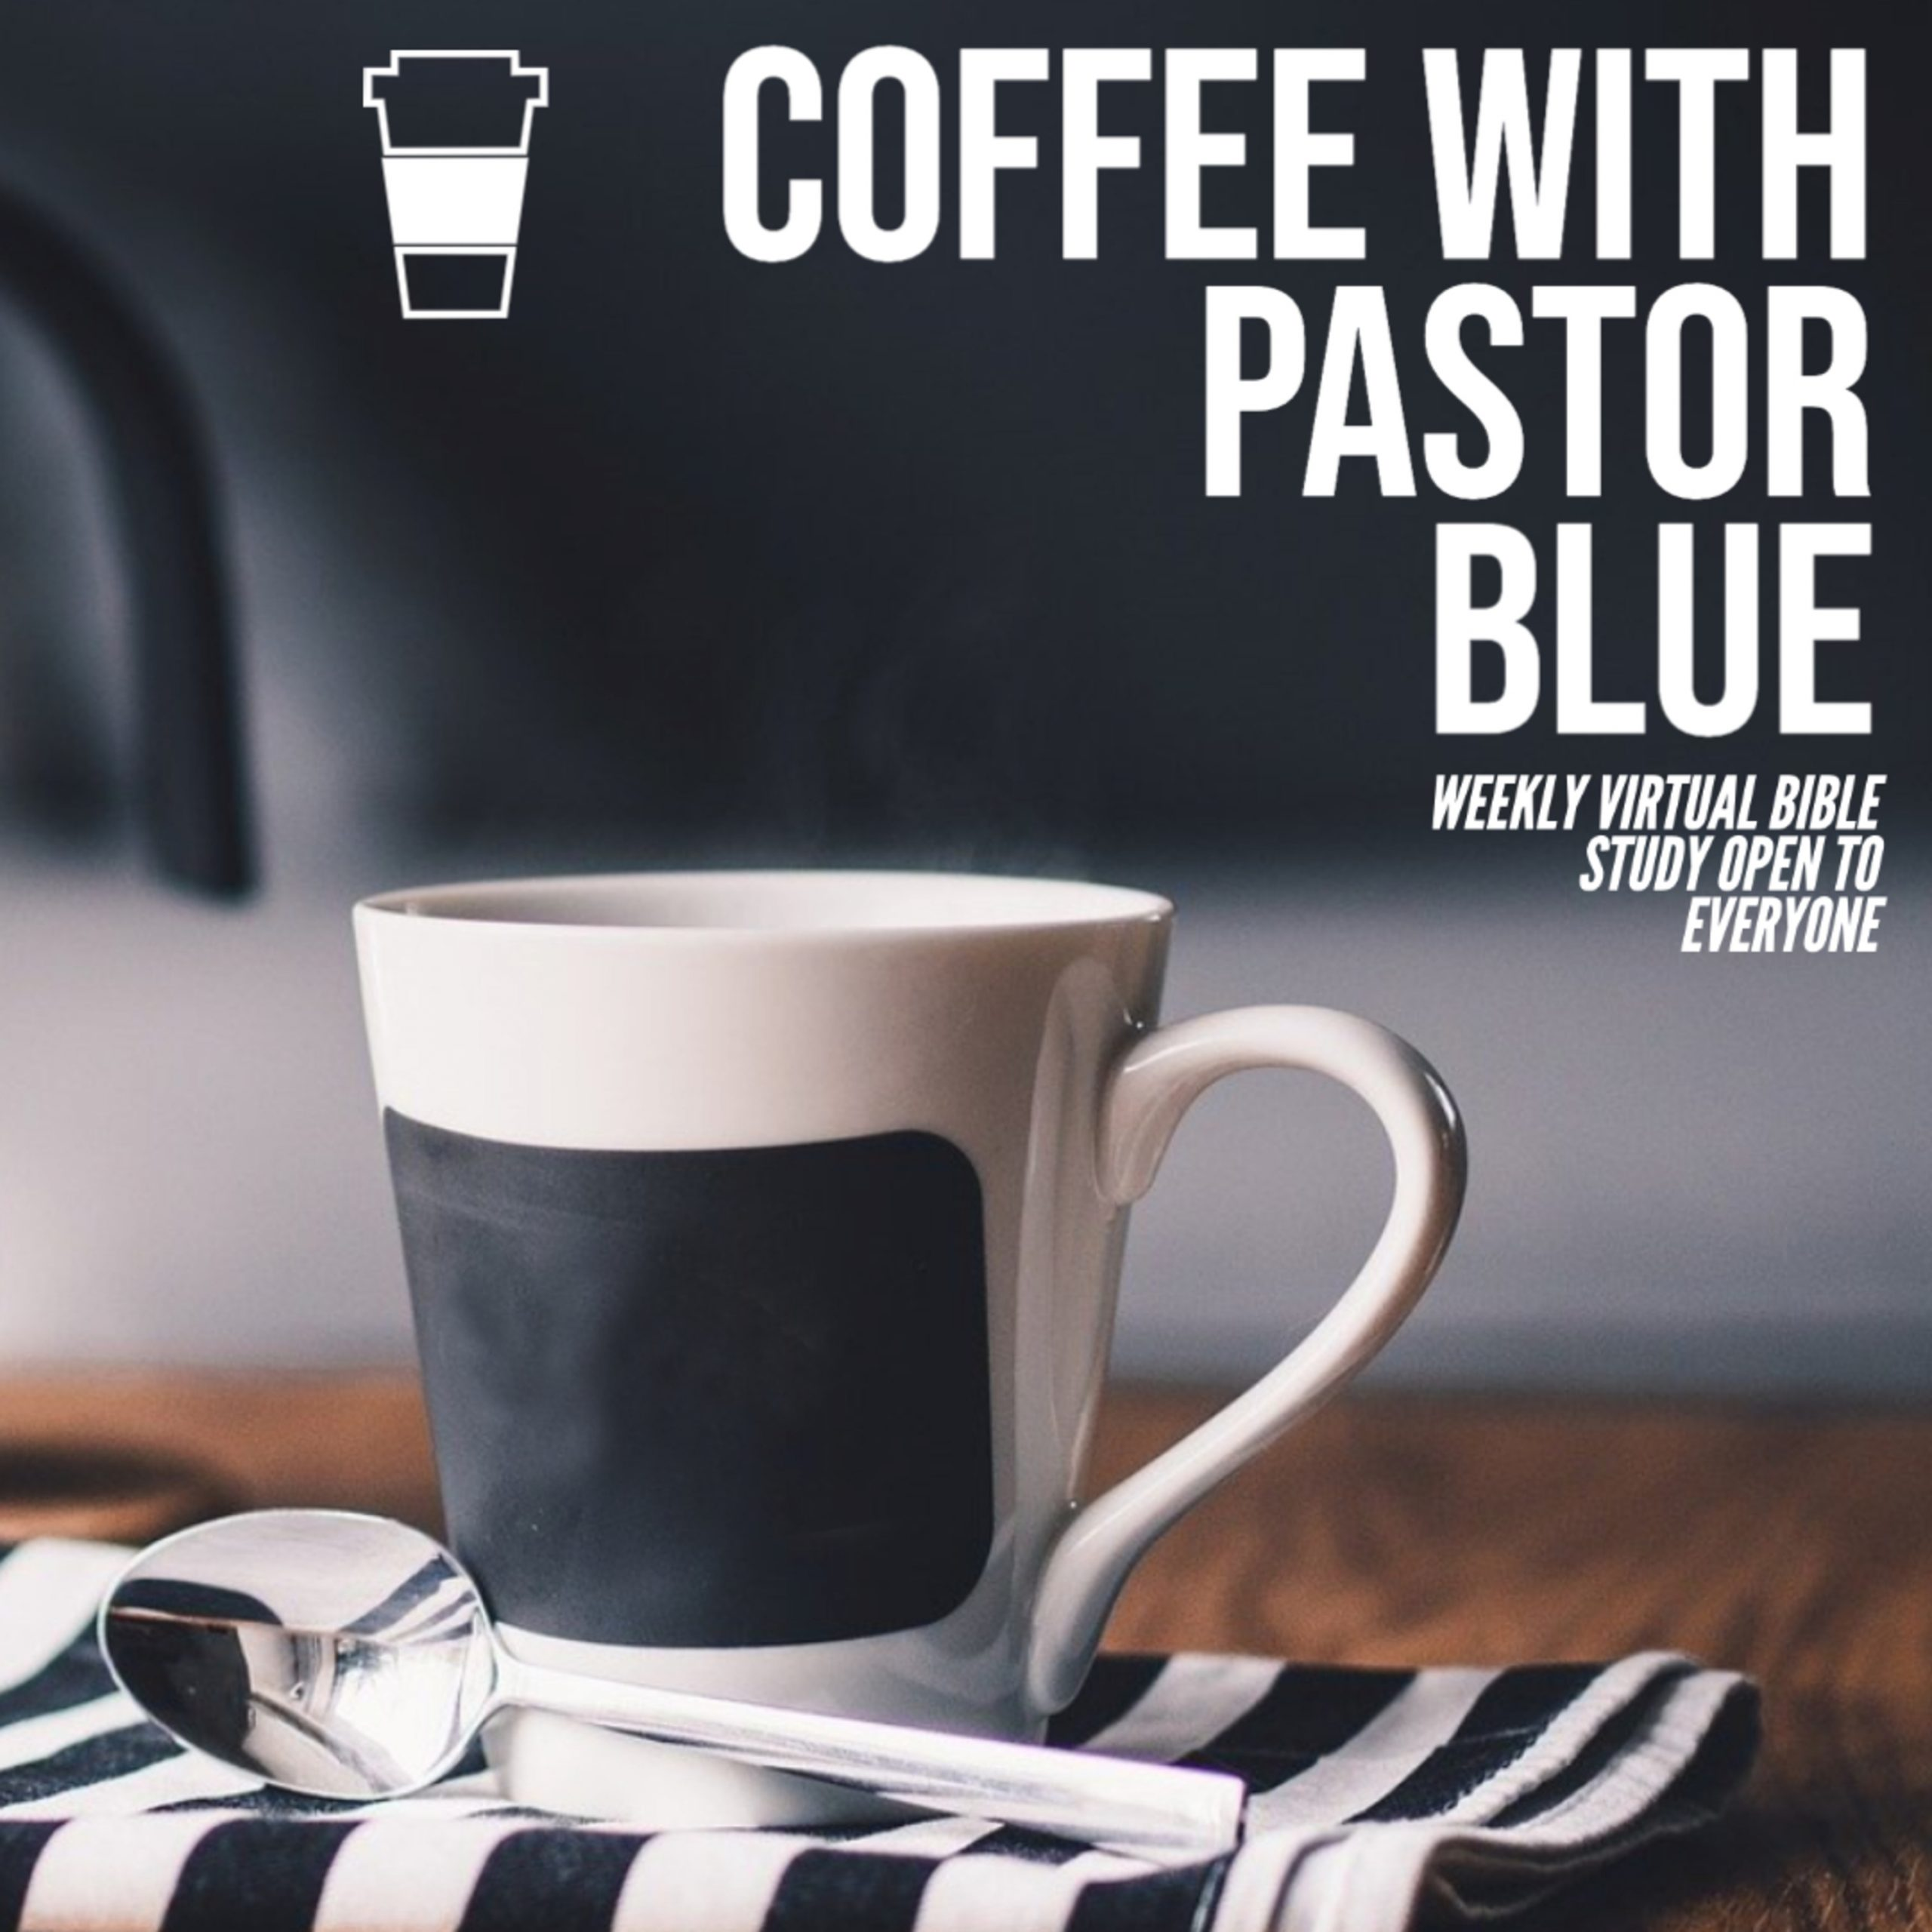 Coffee with the Pastor Episode 4: The Great Commission